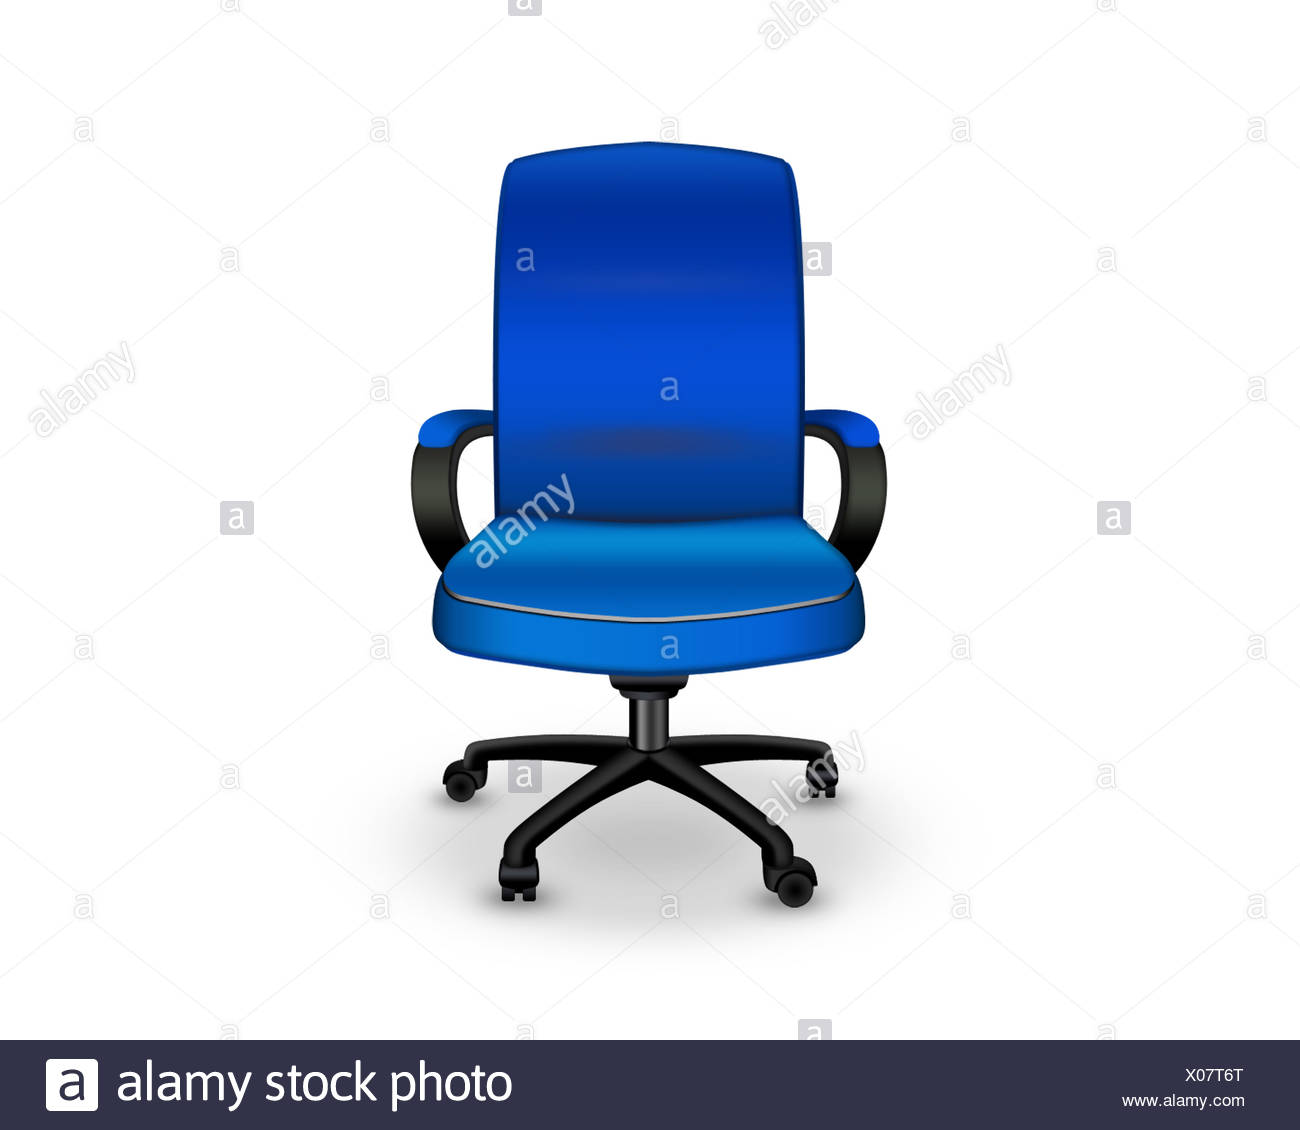 blue office chair - Stock Image